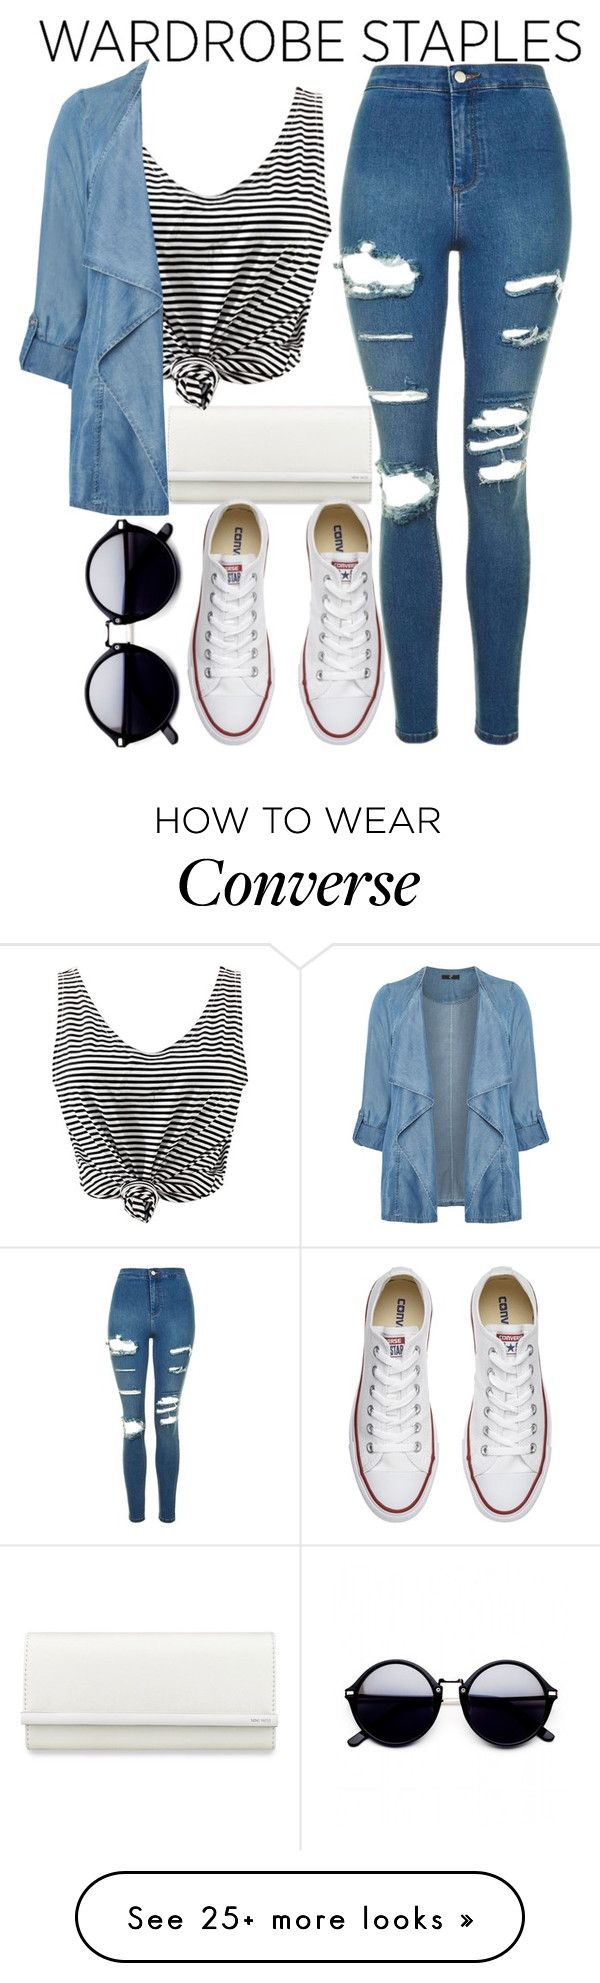 """""""Wardrobe staples"""" by mareehamasood246 on Polyvore featuring Nine West, WithChic, Evans, Converse, Topshop, denimjackets and WardrobeStaples"""